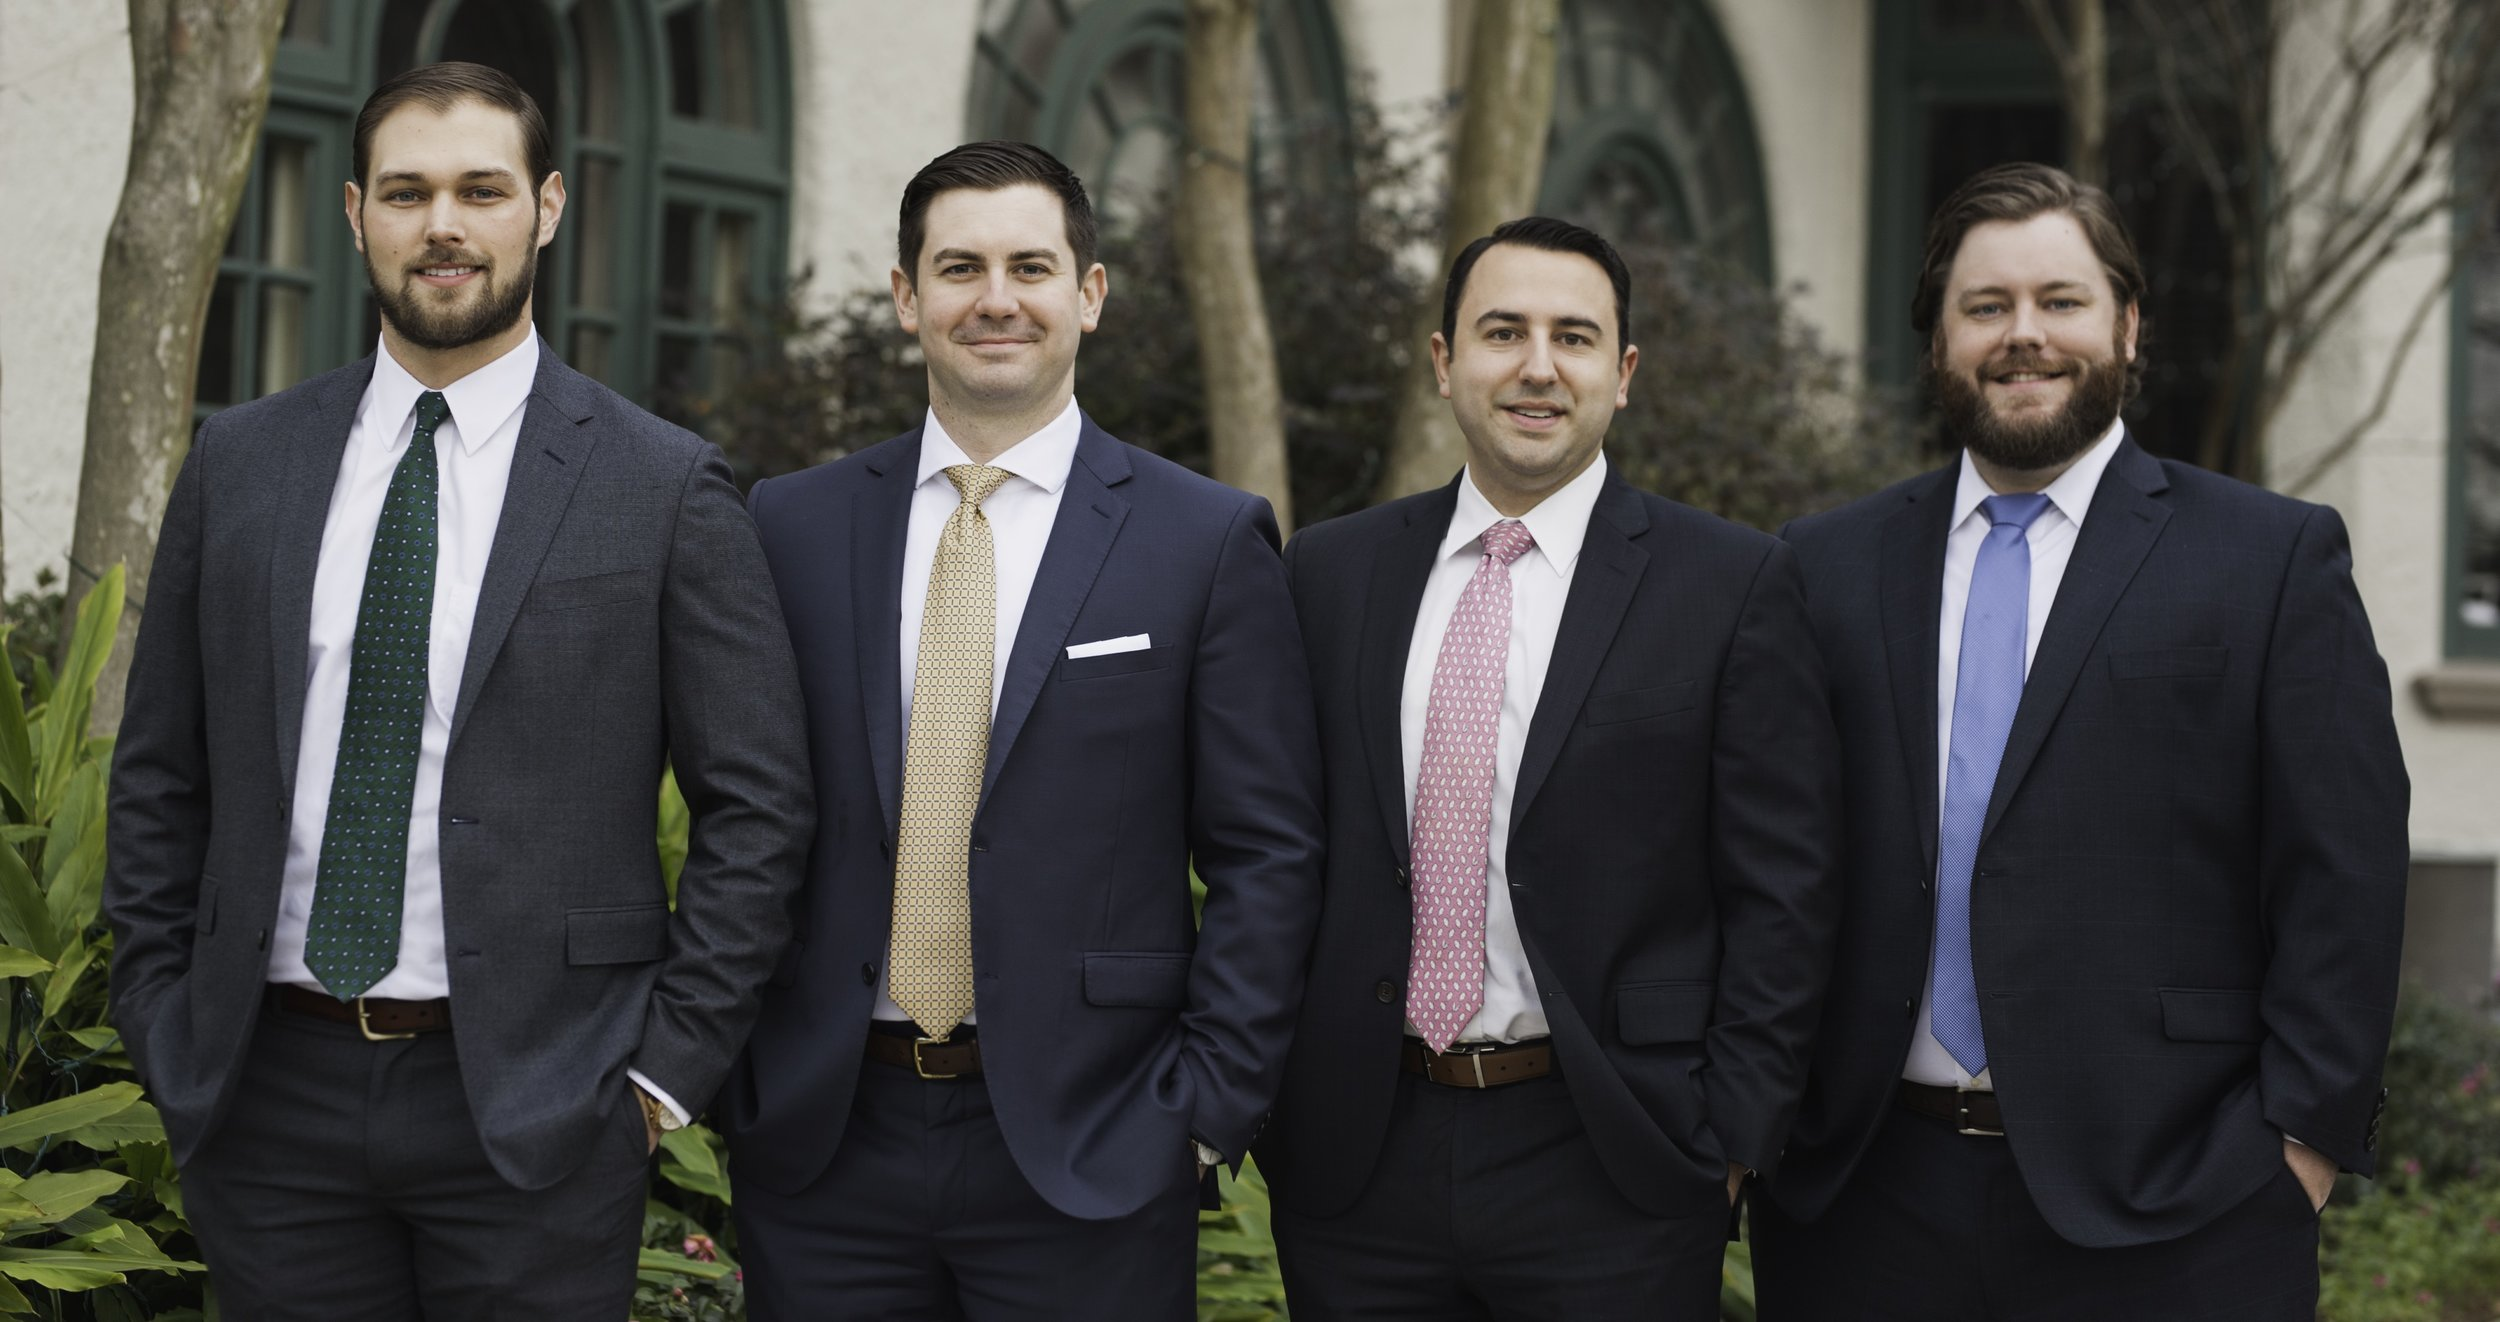 Who We Are: Mansfield Melancon has a team of passionate and dedicated lawyers who have knowledge and experience with handling personal injury, criminal defense, family law, and business litigation cases throughout the state of Louisiana.  We strive to offer our clients outstanding customer service, and we ensure that each client's case will get the time, attention and skillful representation that it deserves.  Our lawyers provide our clients with the experience and resources of a big law firm, along with the personal attention, dedication, and accessibility that you deserve and expect from your lawyers.   -